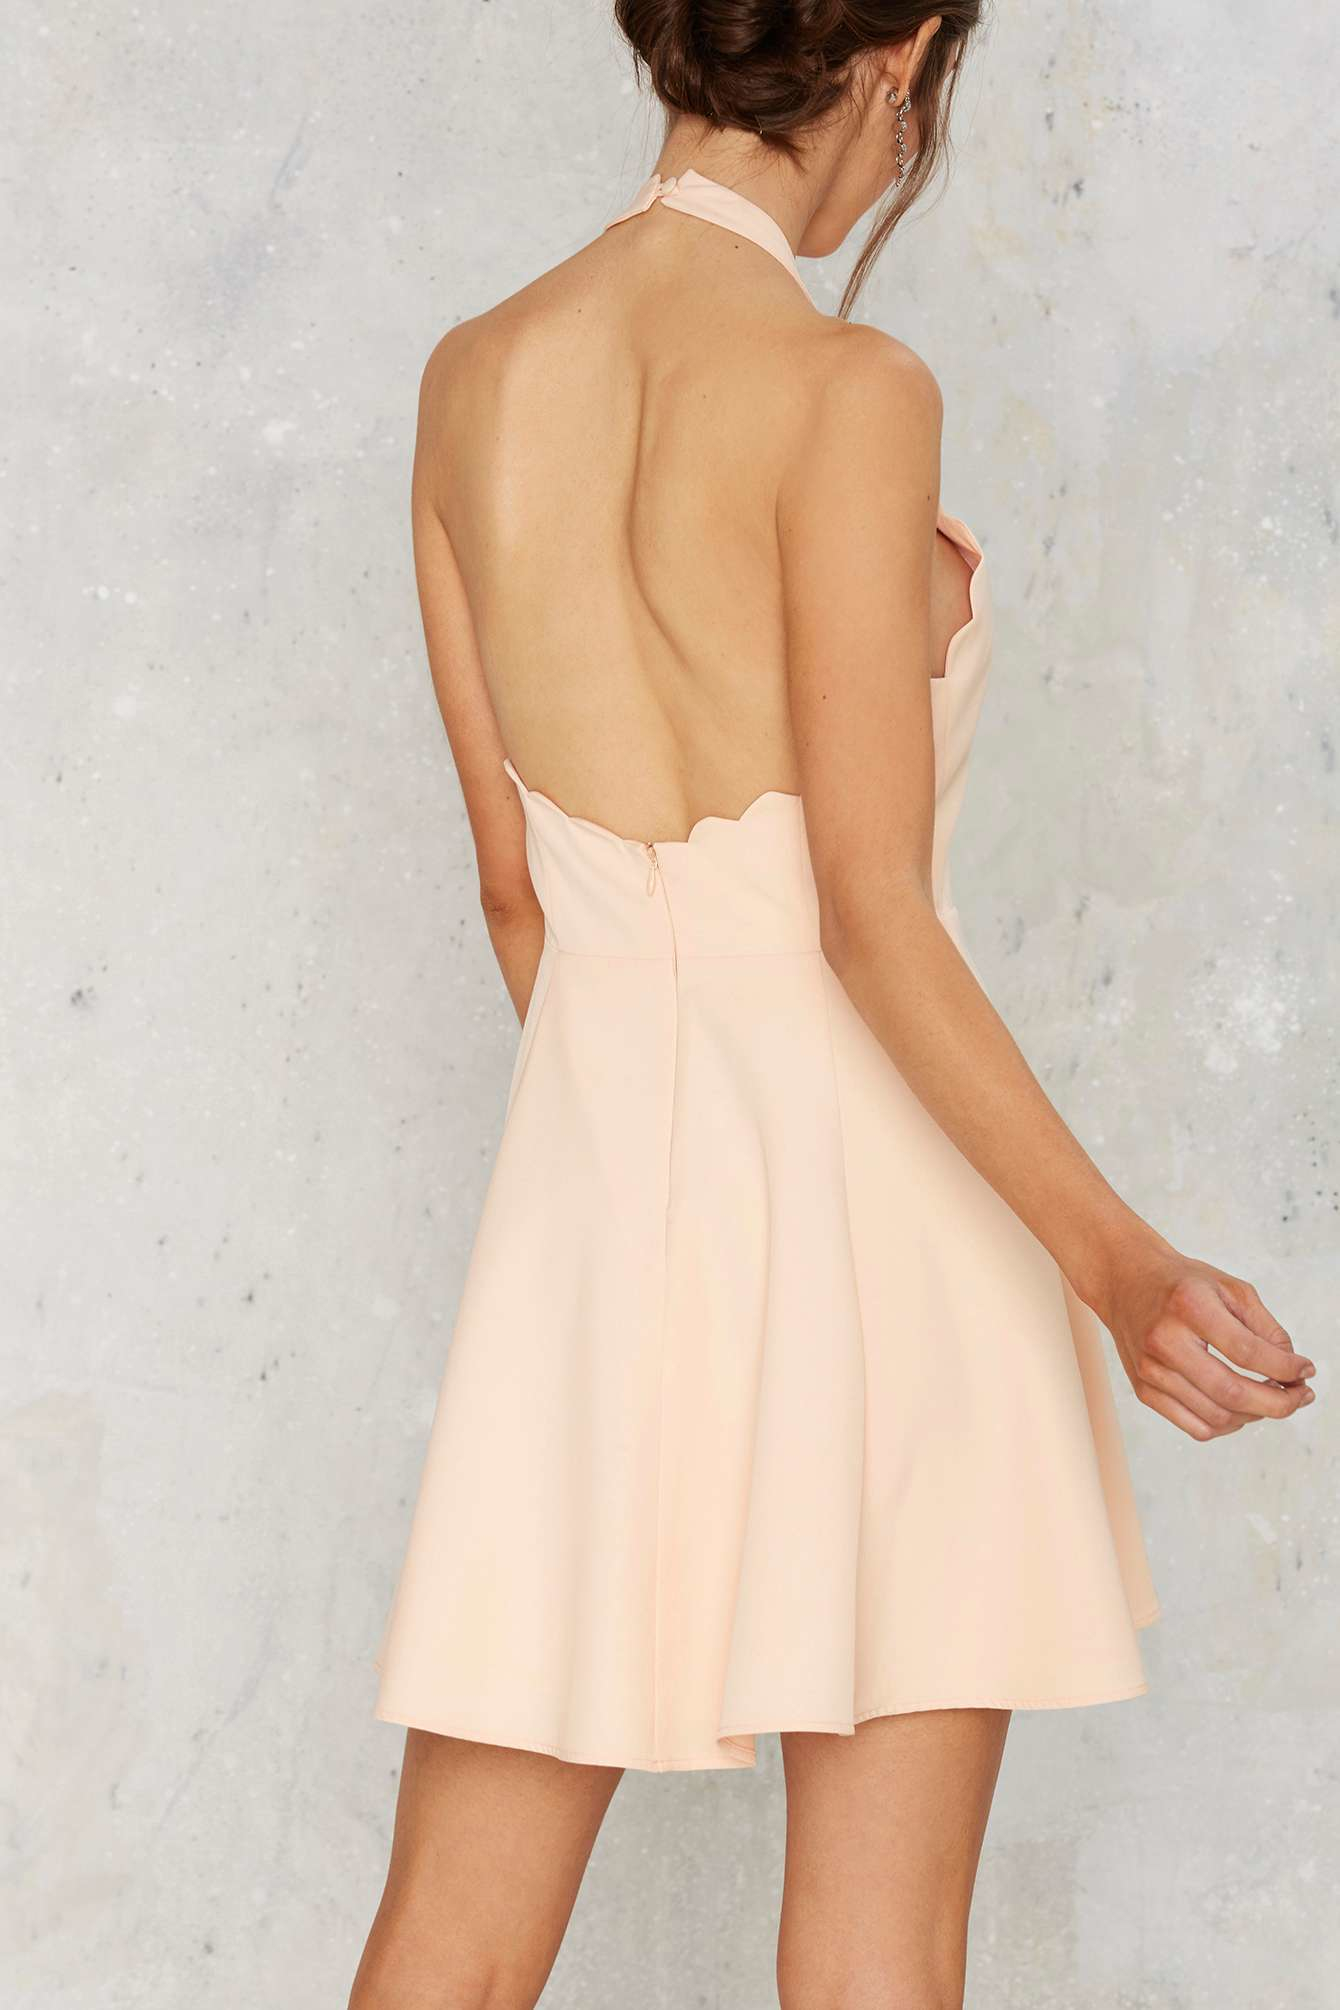 5a980c1a641 Lyst - Nasty Gal Full Scallop Attack Flare Dress - Peach in Pink